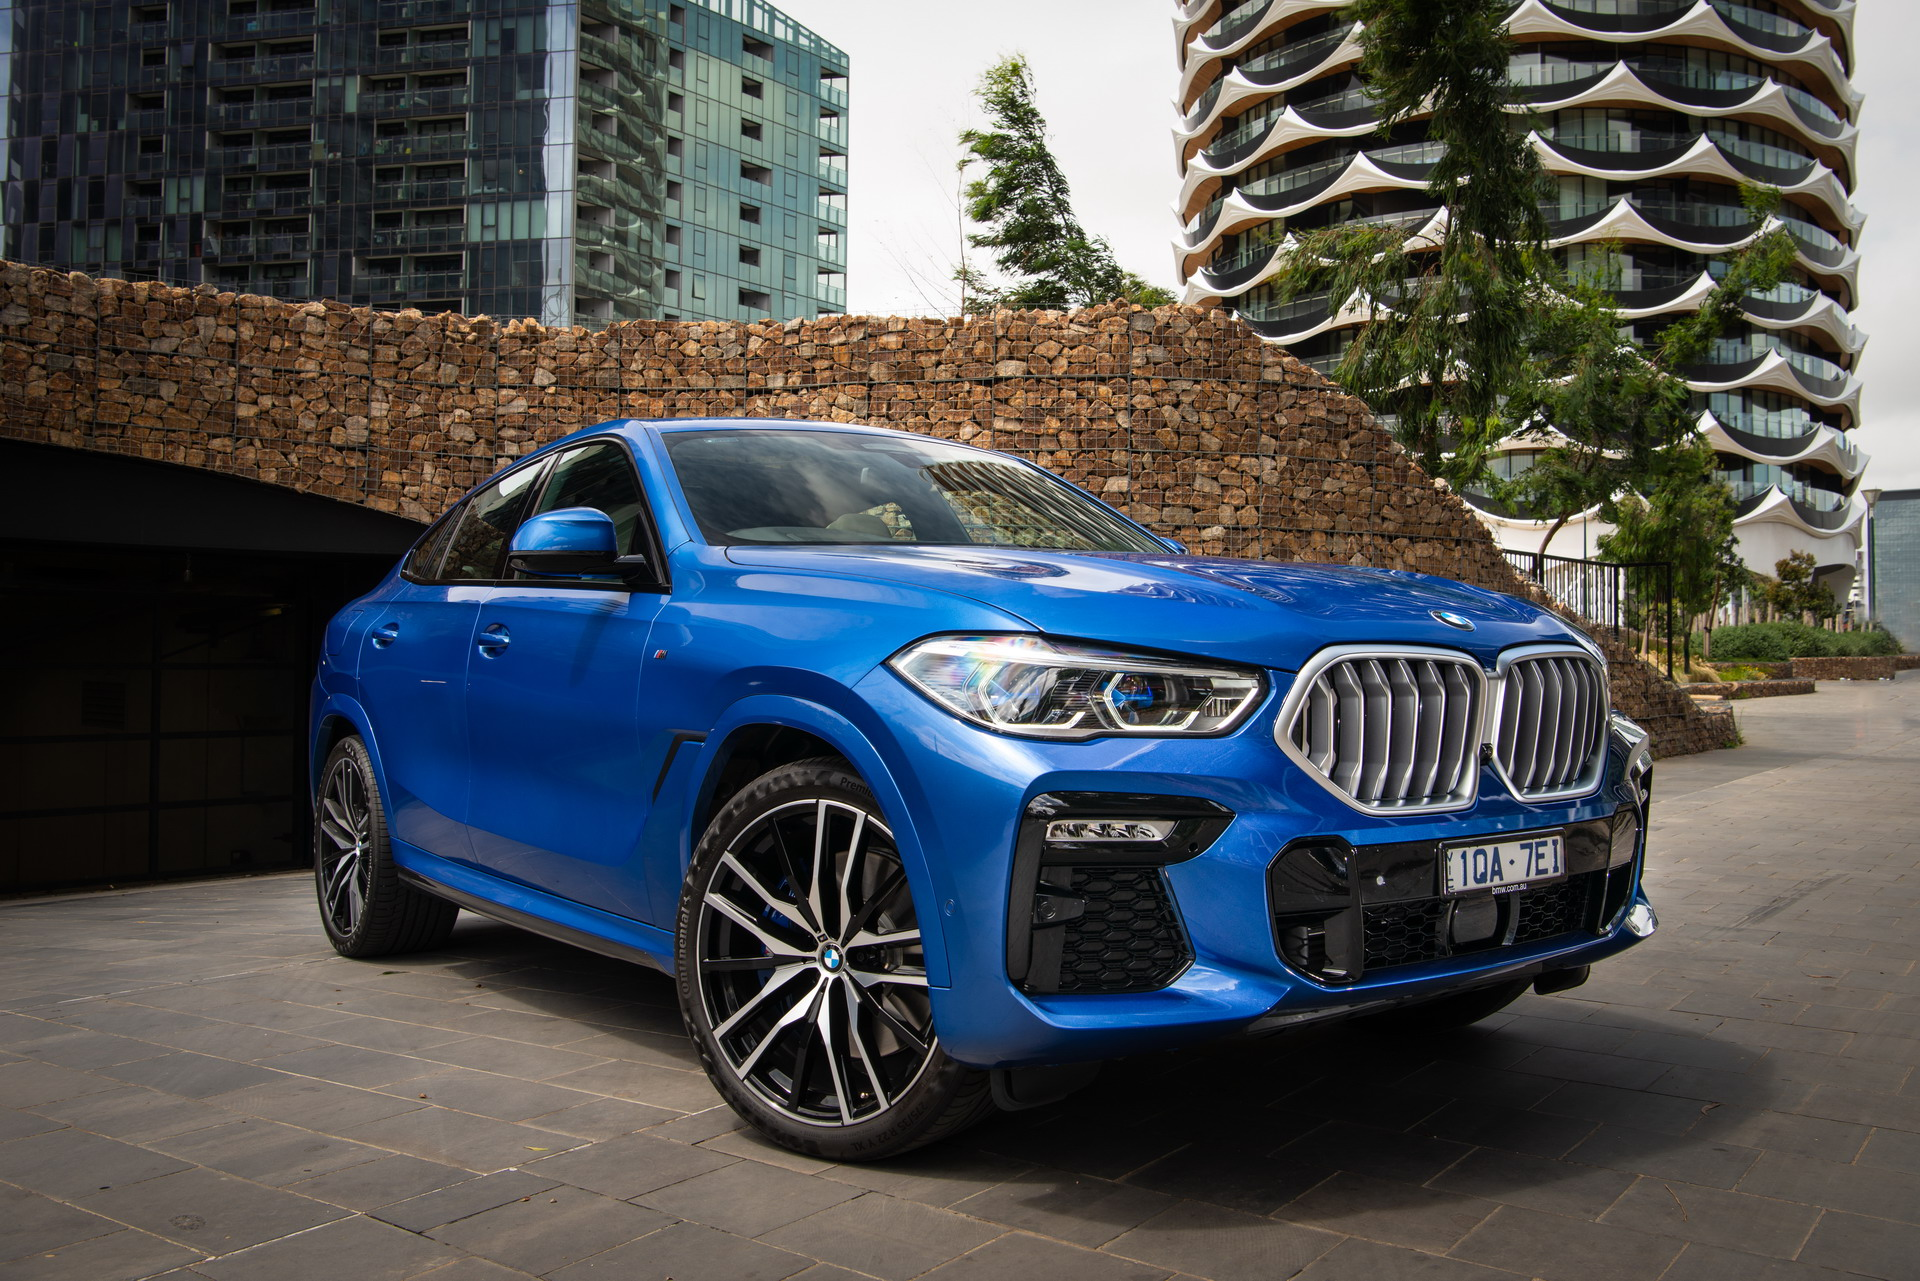 Photo Gallery The New Bmw X6 G06 In The Land Of Oz